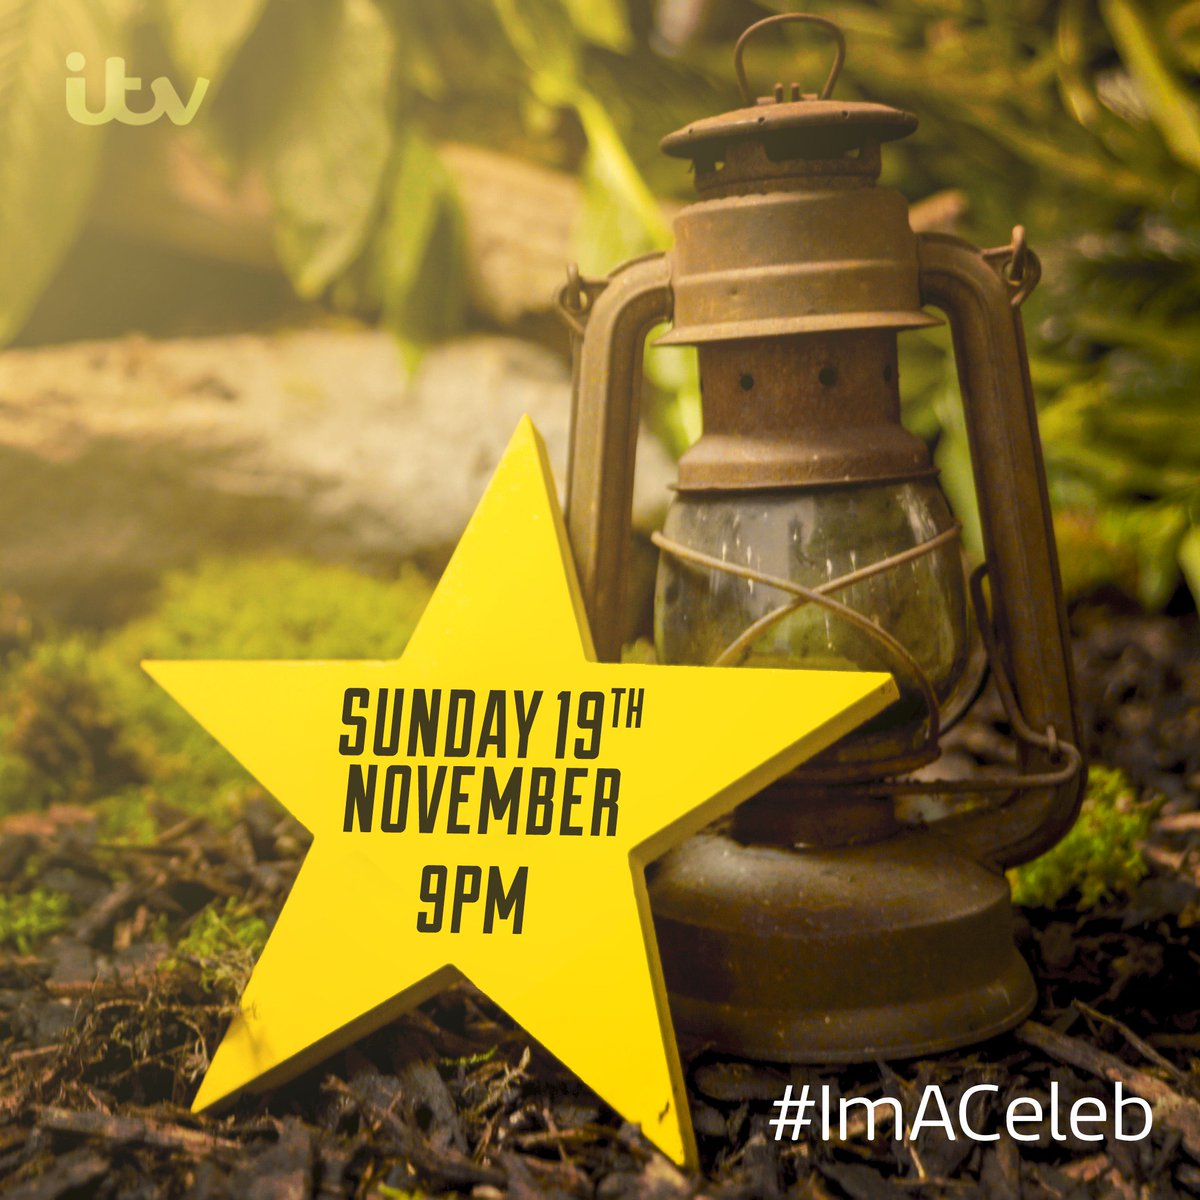 Forget Christmas, this is the ONLY date you need to remember this year.  Sunday 19th November. #ImACeleb